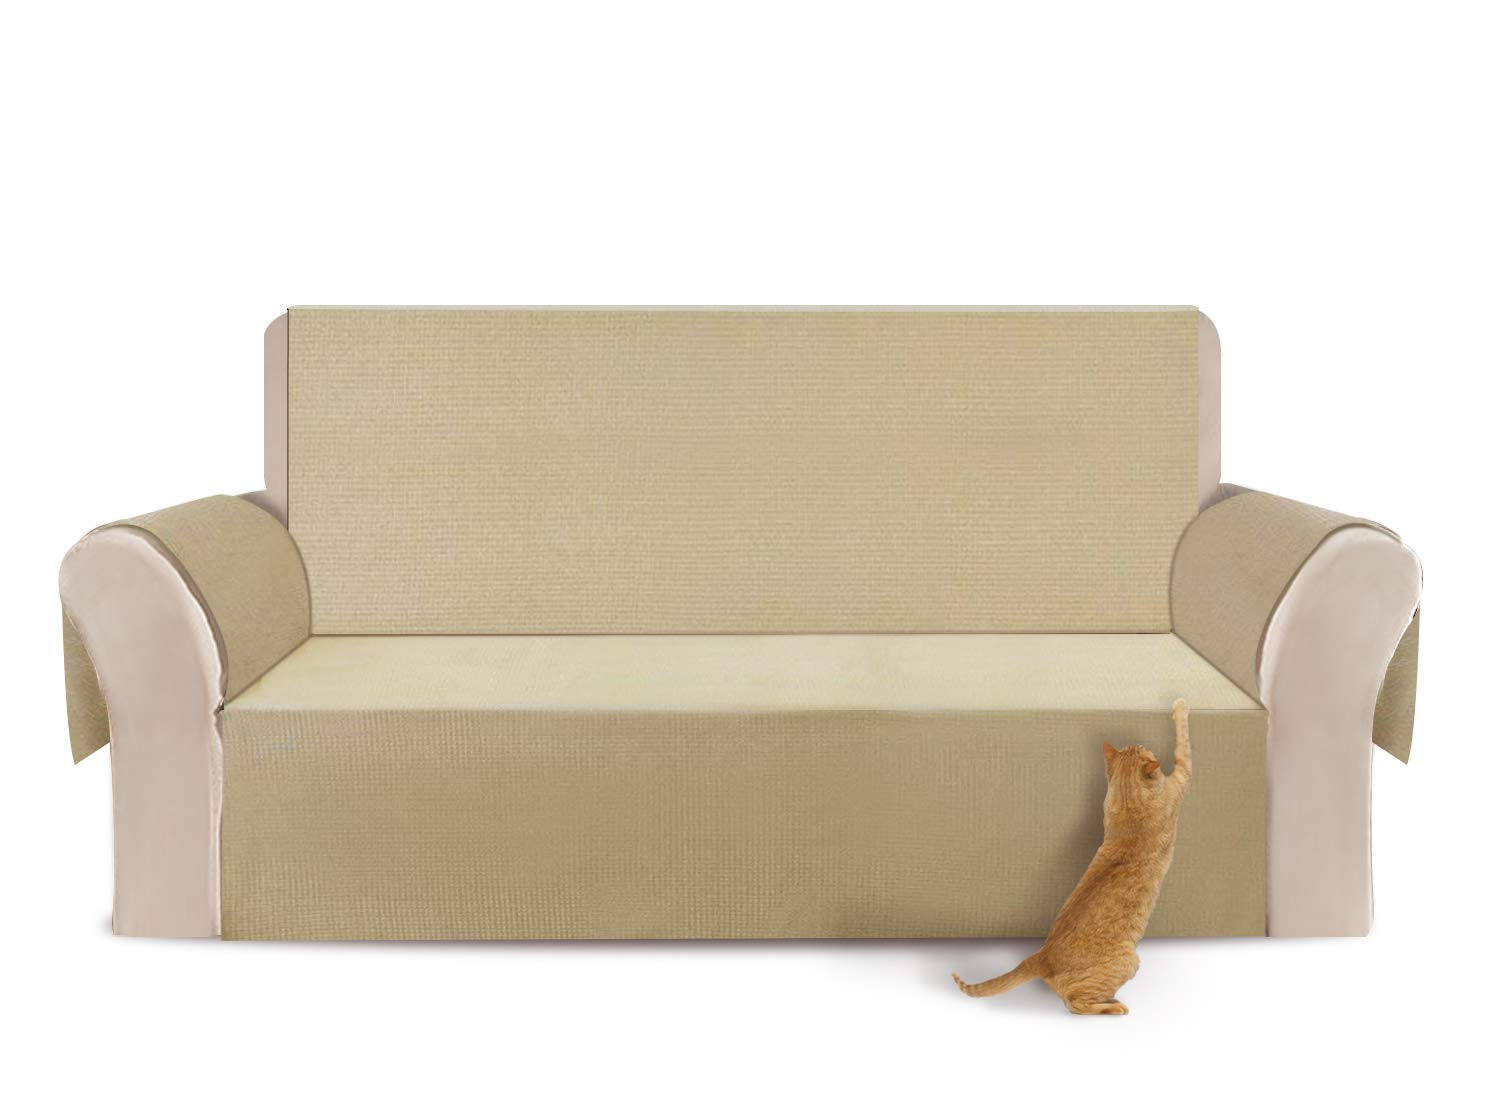 YEMYHOM 100% Non-Slip Large Couch Covers Anti-Leakage Oversized Sofa Slipcovers 3-Cushion Couch Protectors Pet Sofa Covers Dog Furniture Covers (Sofa ...